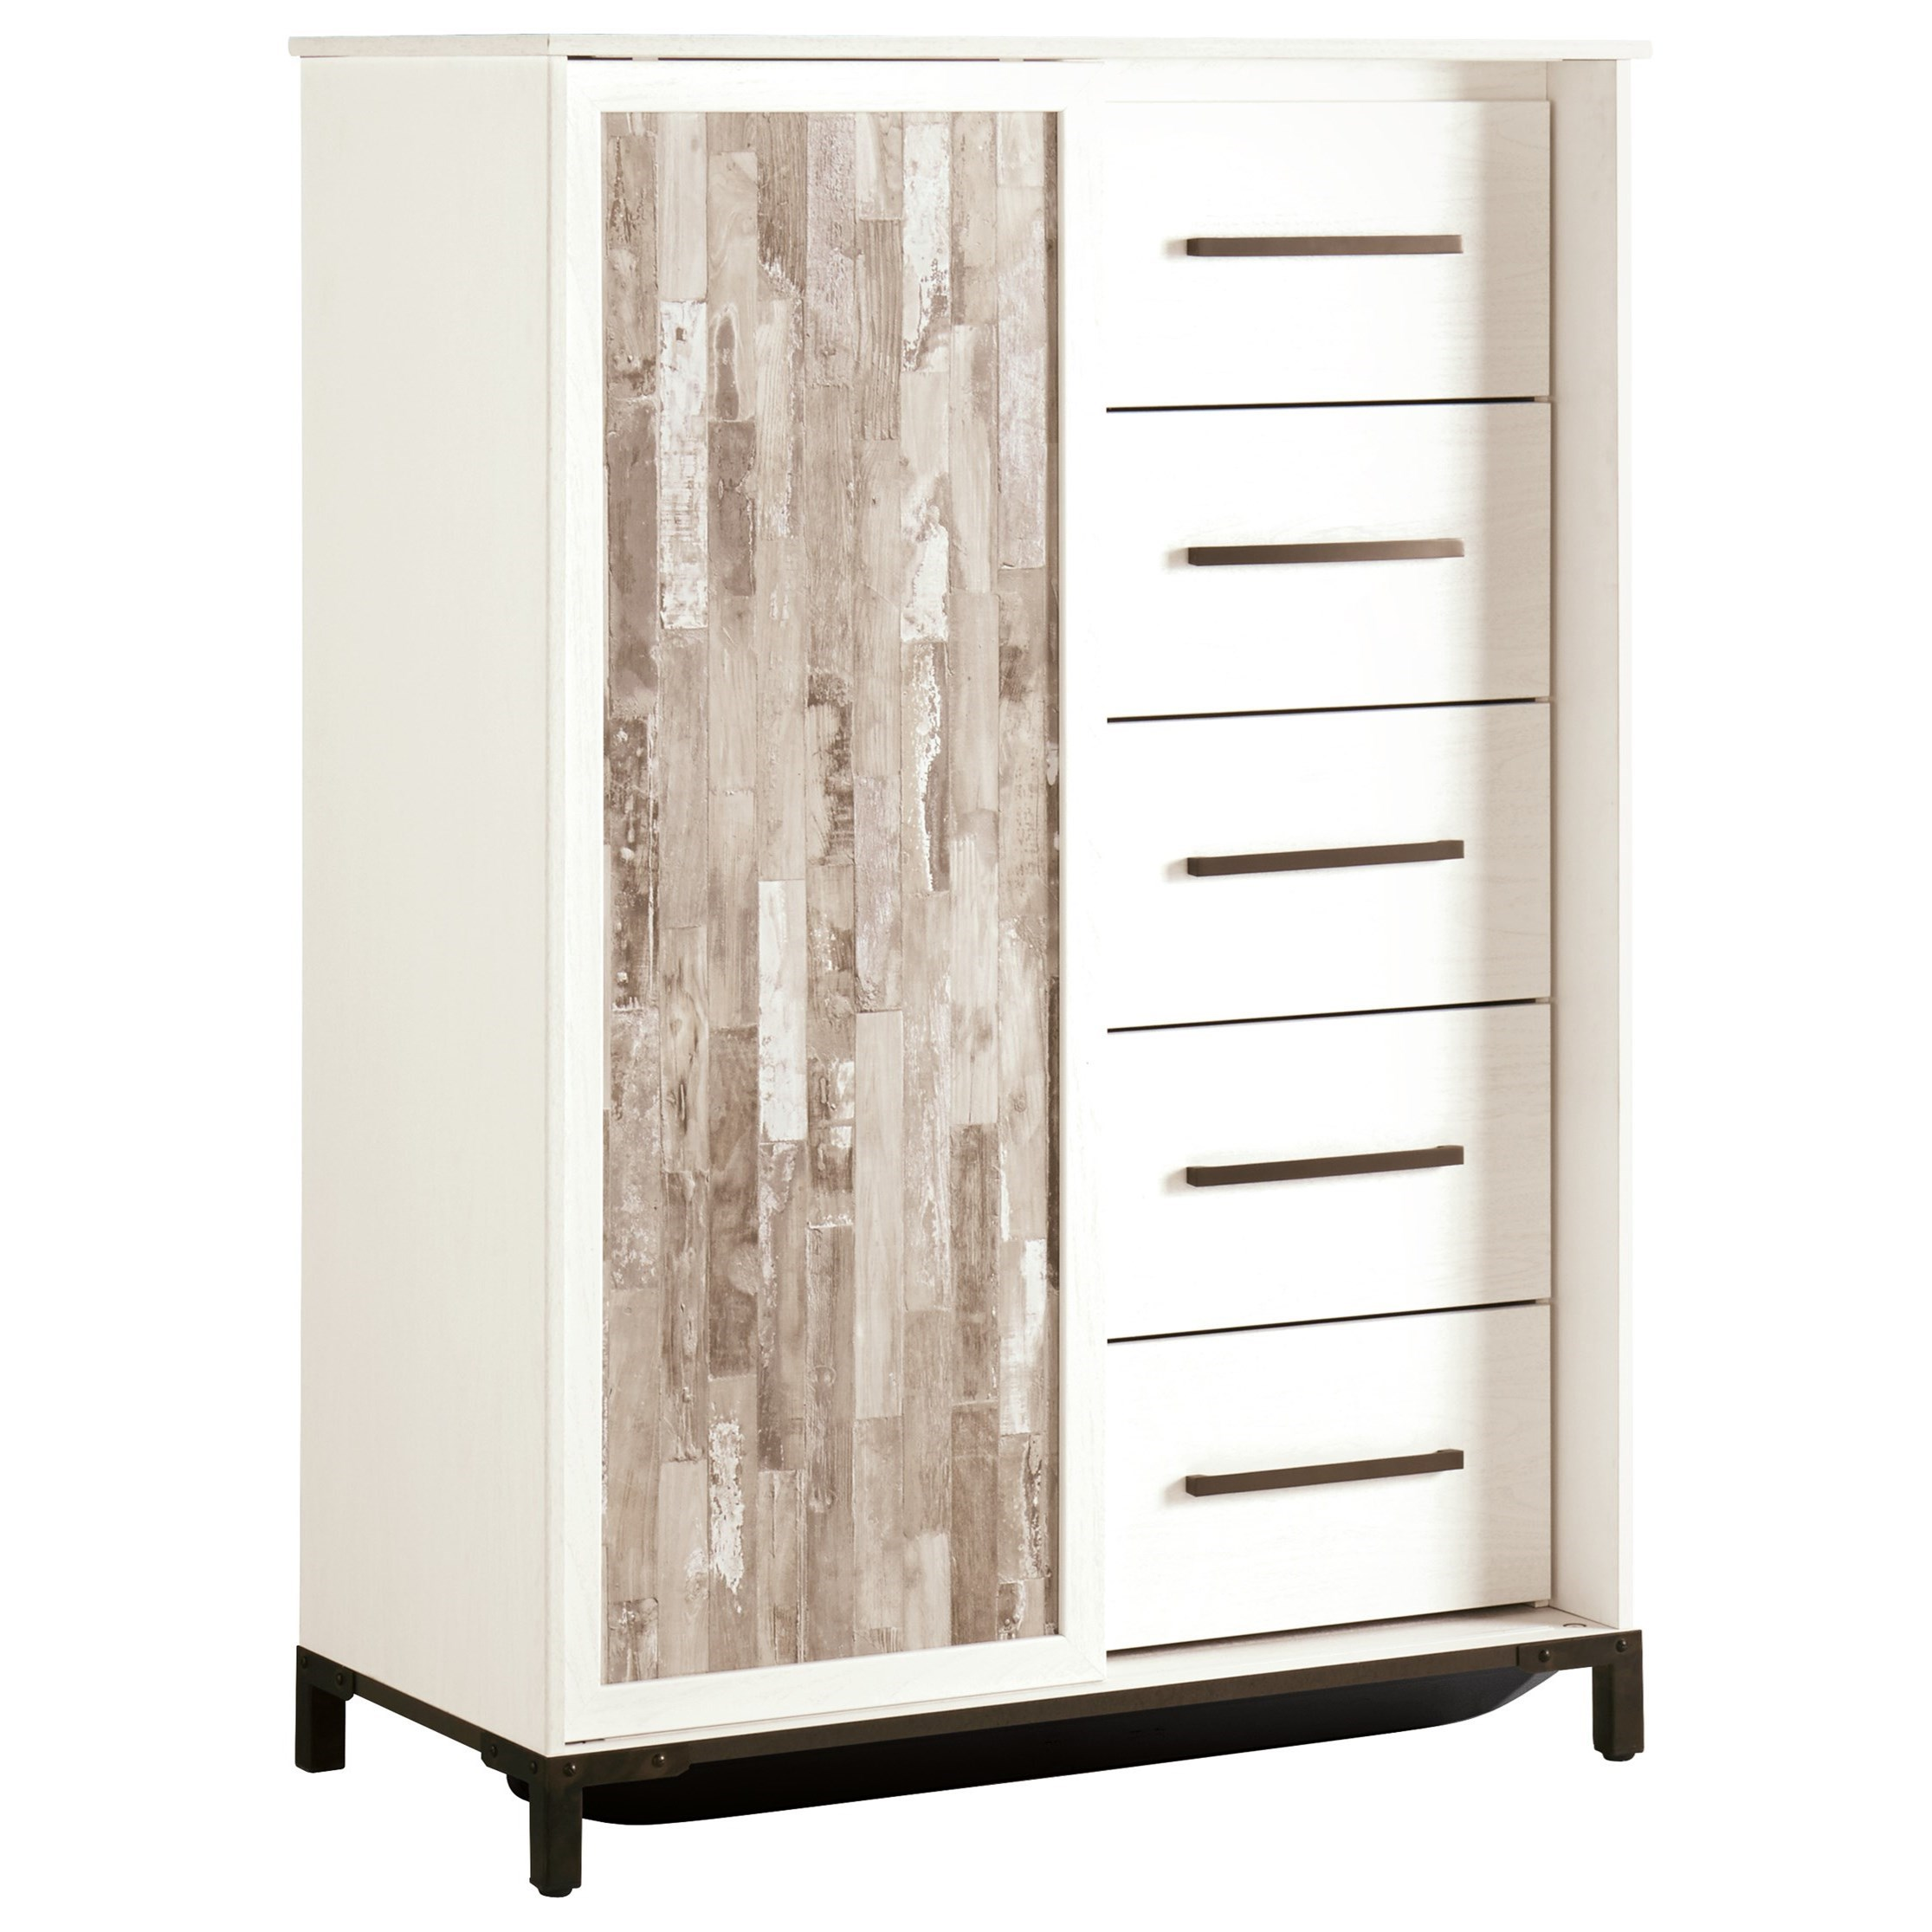 Evanni Dressing Chest by Signature Design by Ashley at Lapeer Furniture & Mattress Center